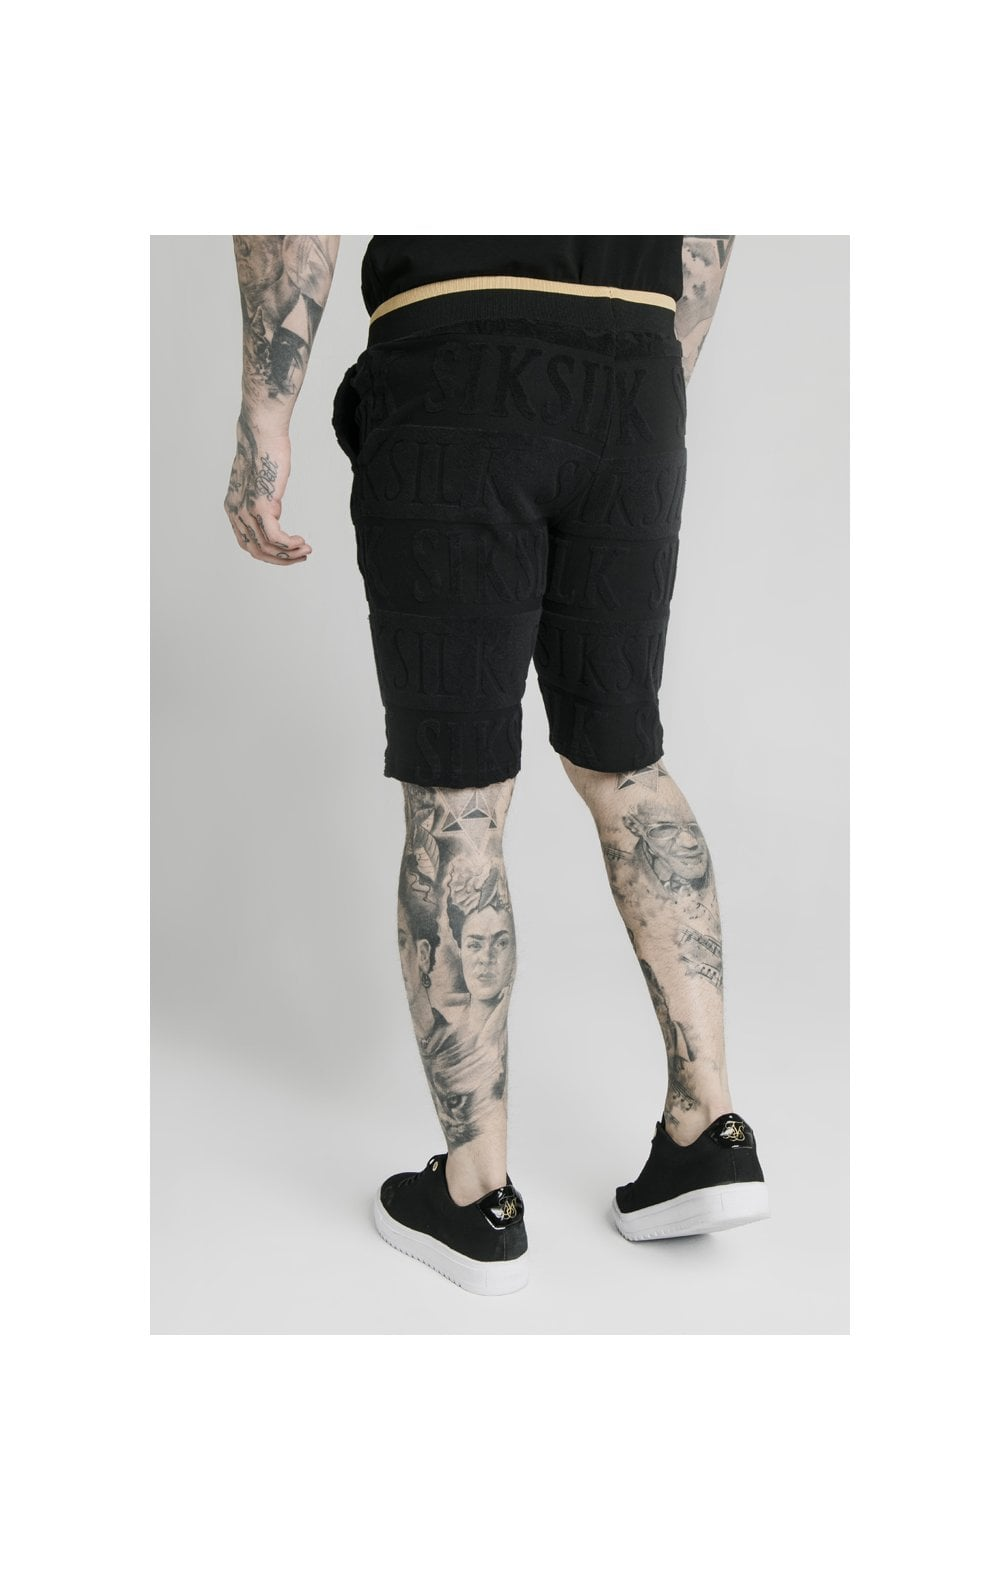 SikSilk Inverse Gym Shorts - Black (2)